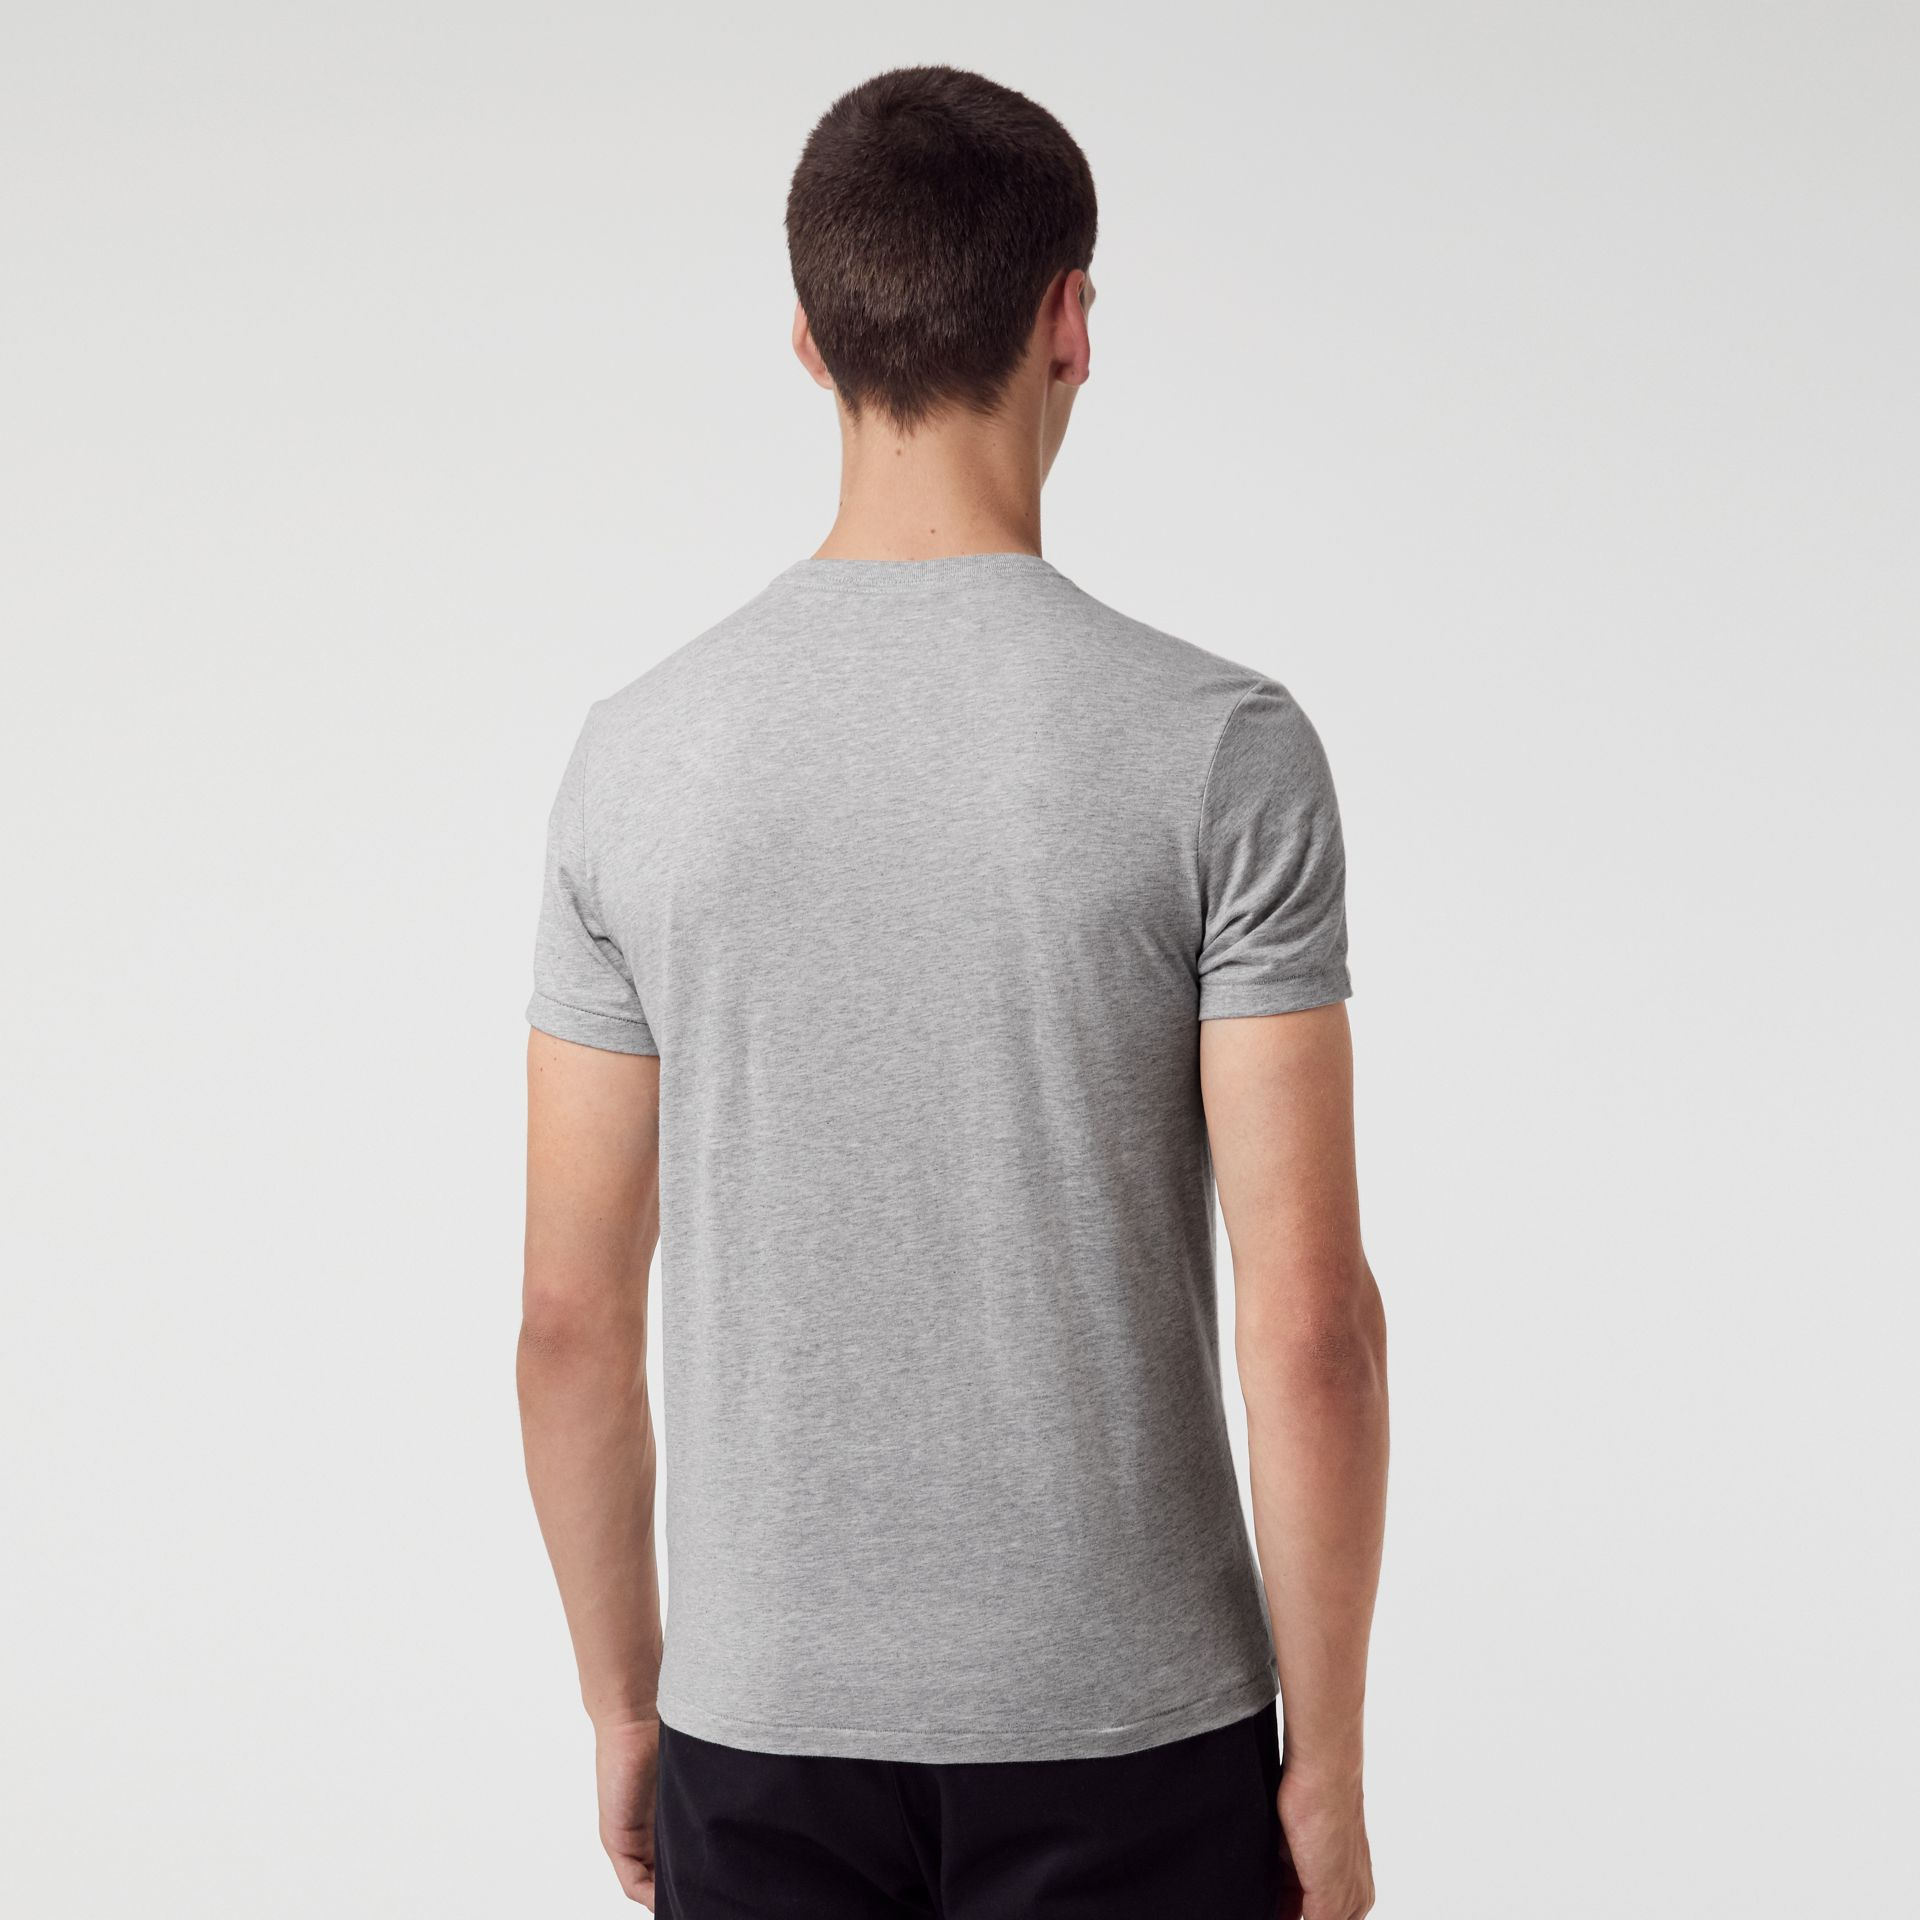 Cotton Jersey V-neck T-shirt in Pale Grey Melange - Men | Burberry Singapore - gallery image 2